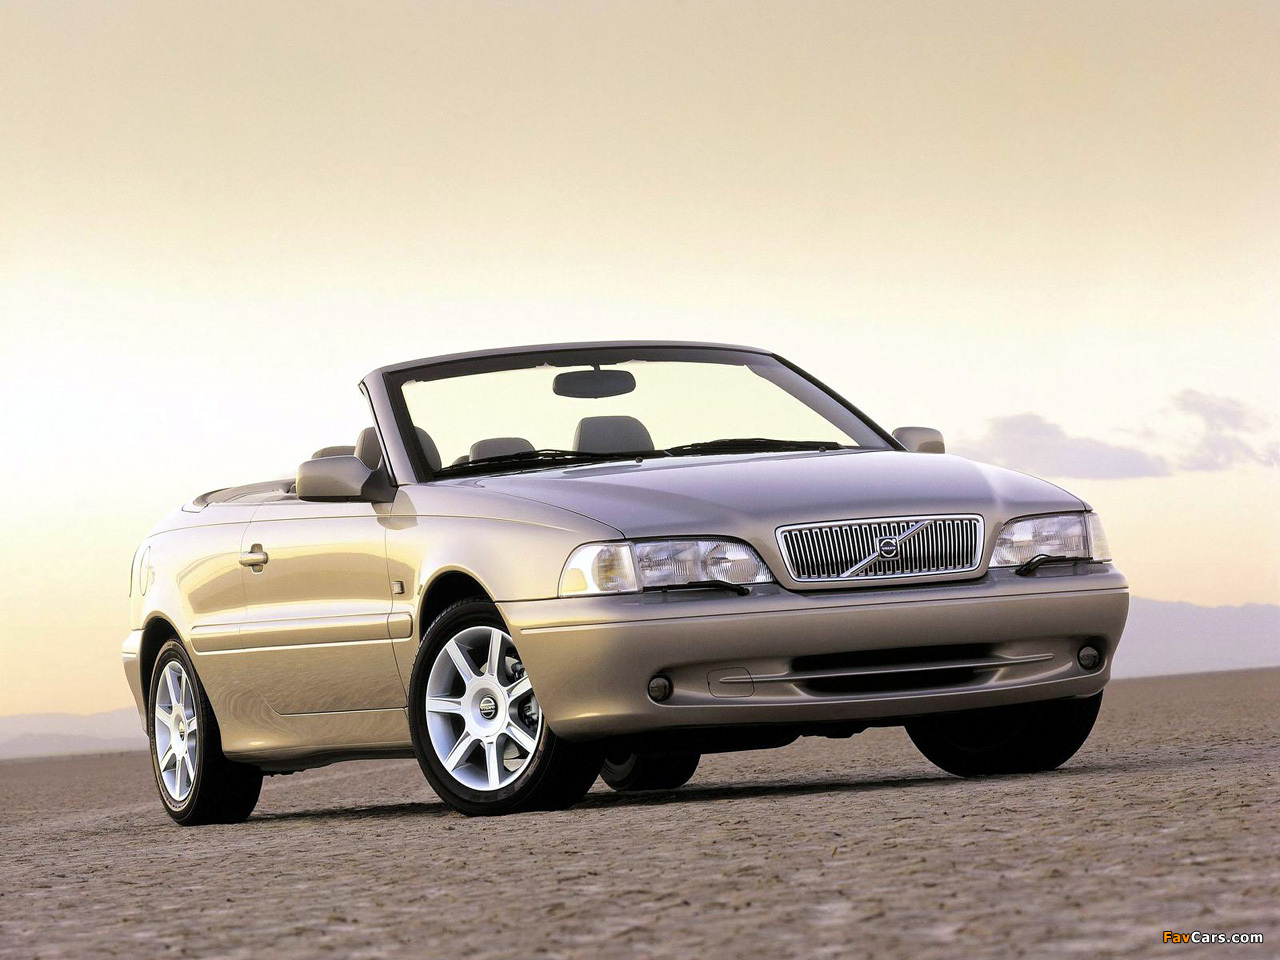 photos of volvo c70 convertible 1998 2005 1280x960. Black Bedroom Furniture Sets. Home Design Ideas